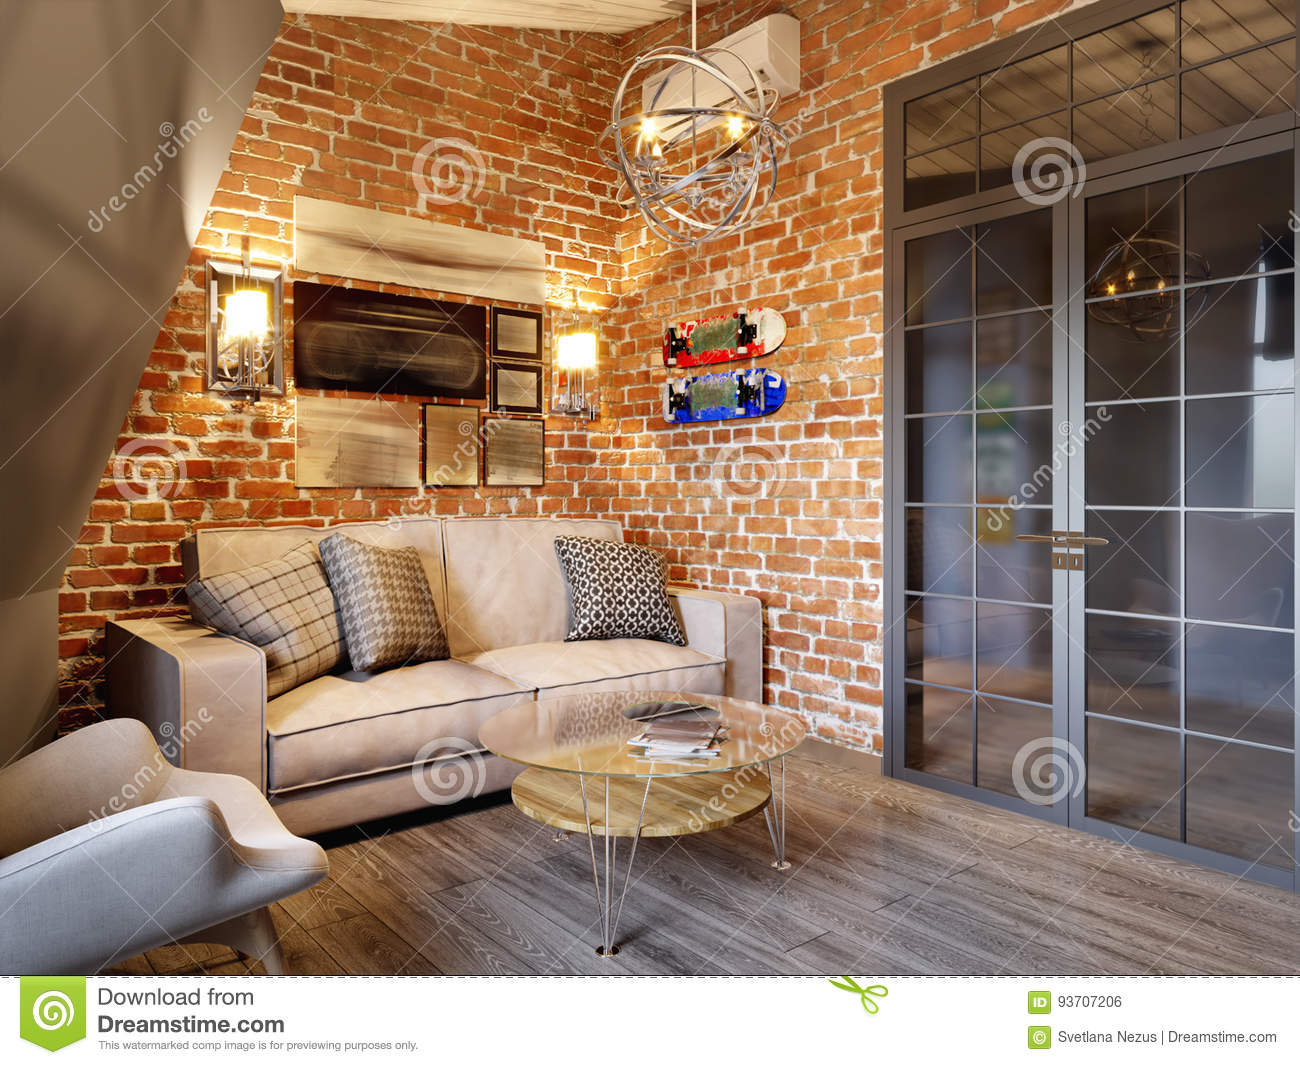 Urban contemporary modern scandinavian loft living room stock illustration illustration of Contemporary urban living room